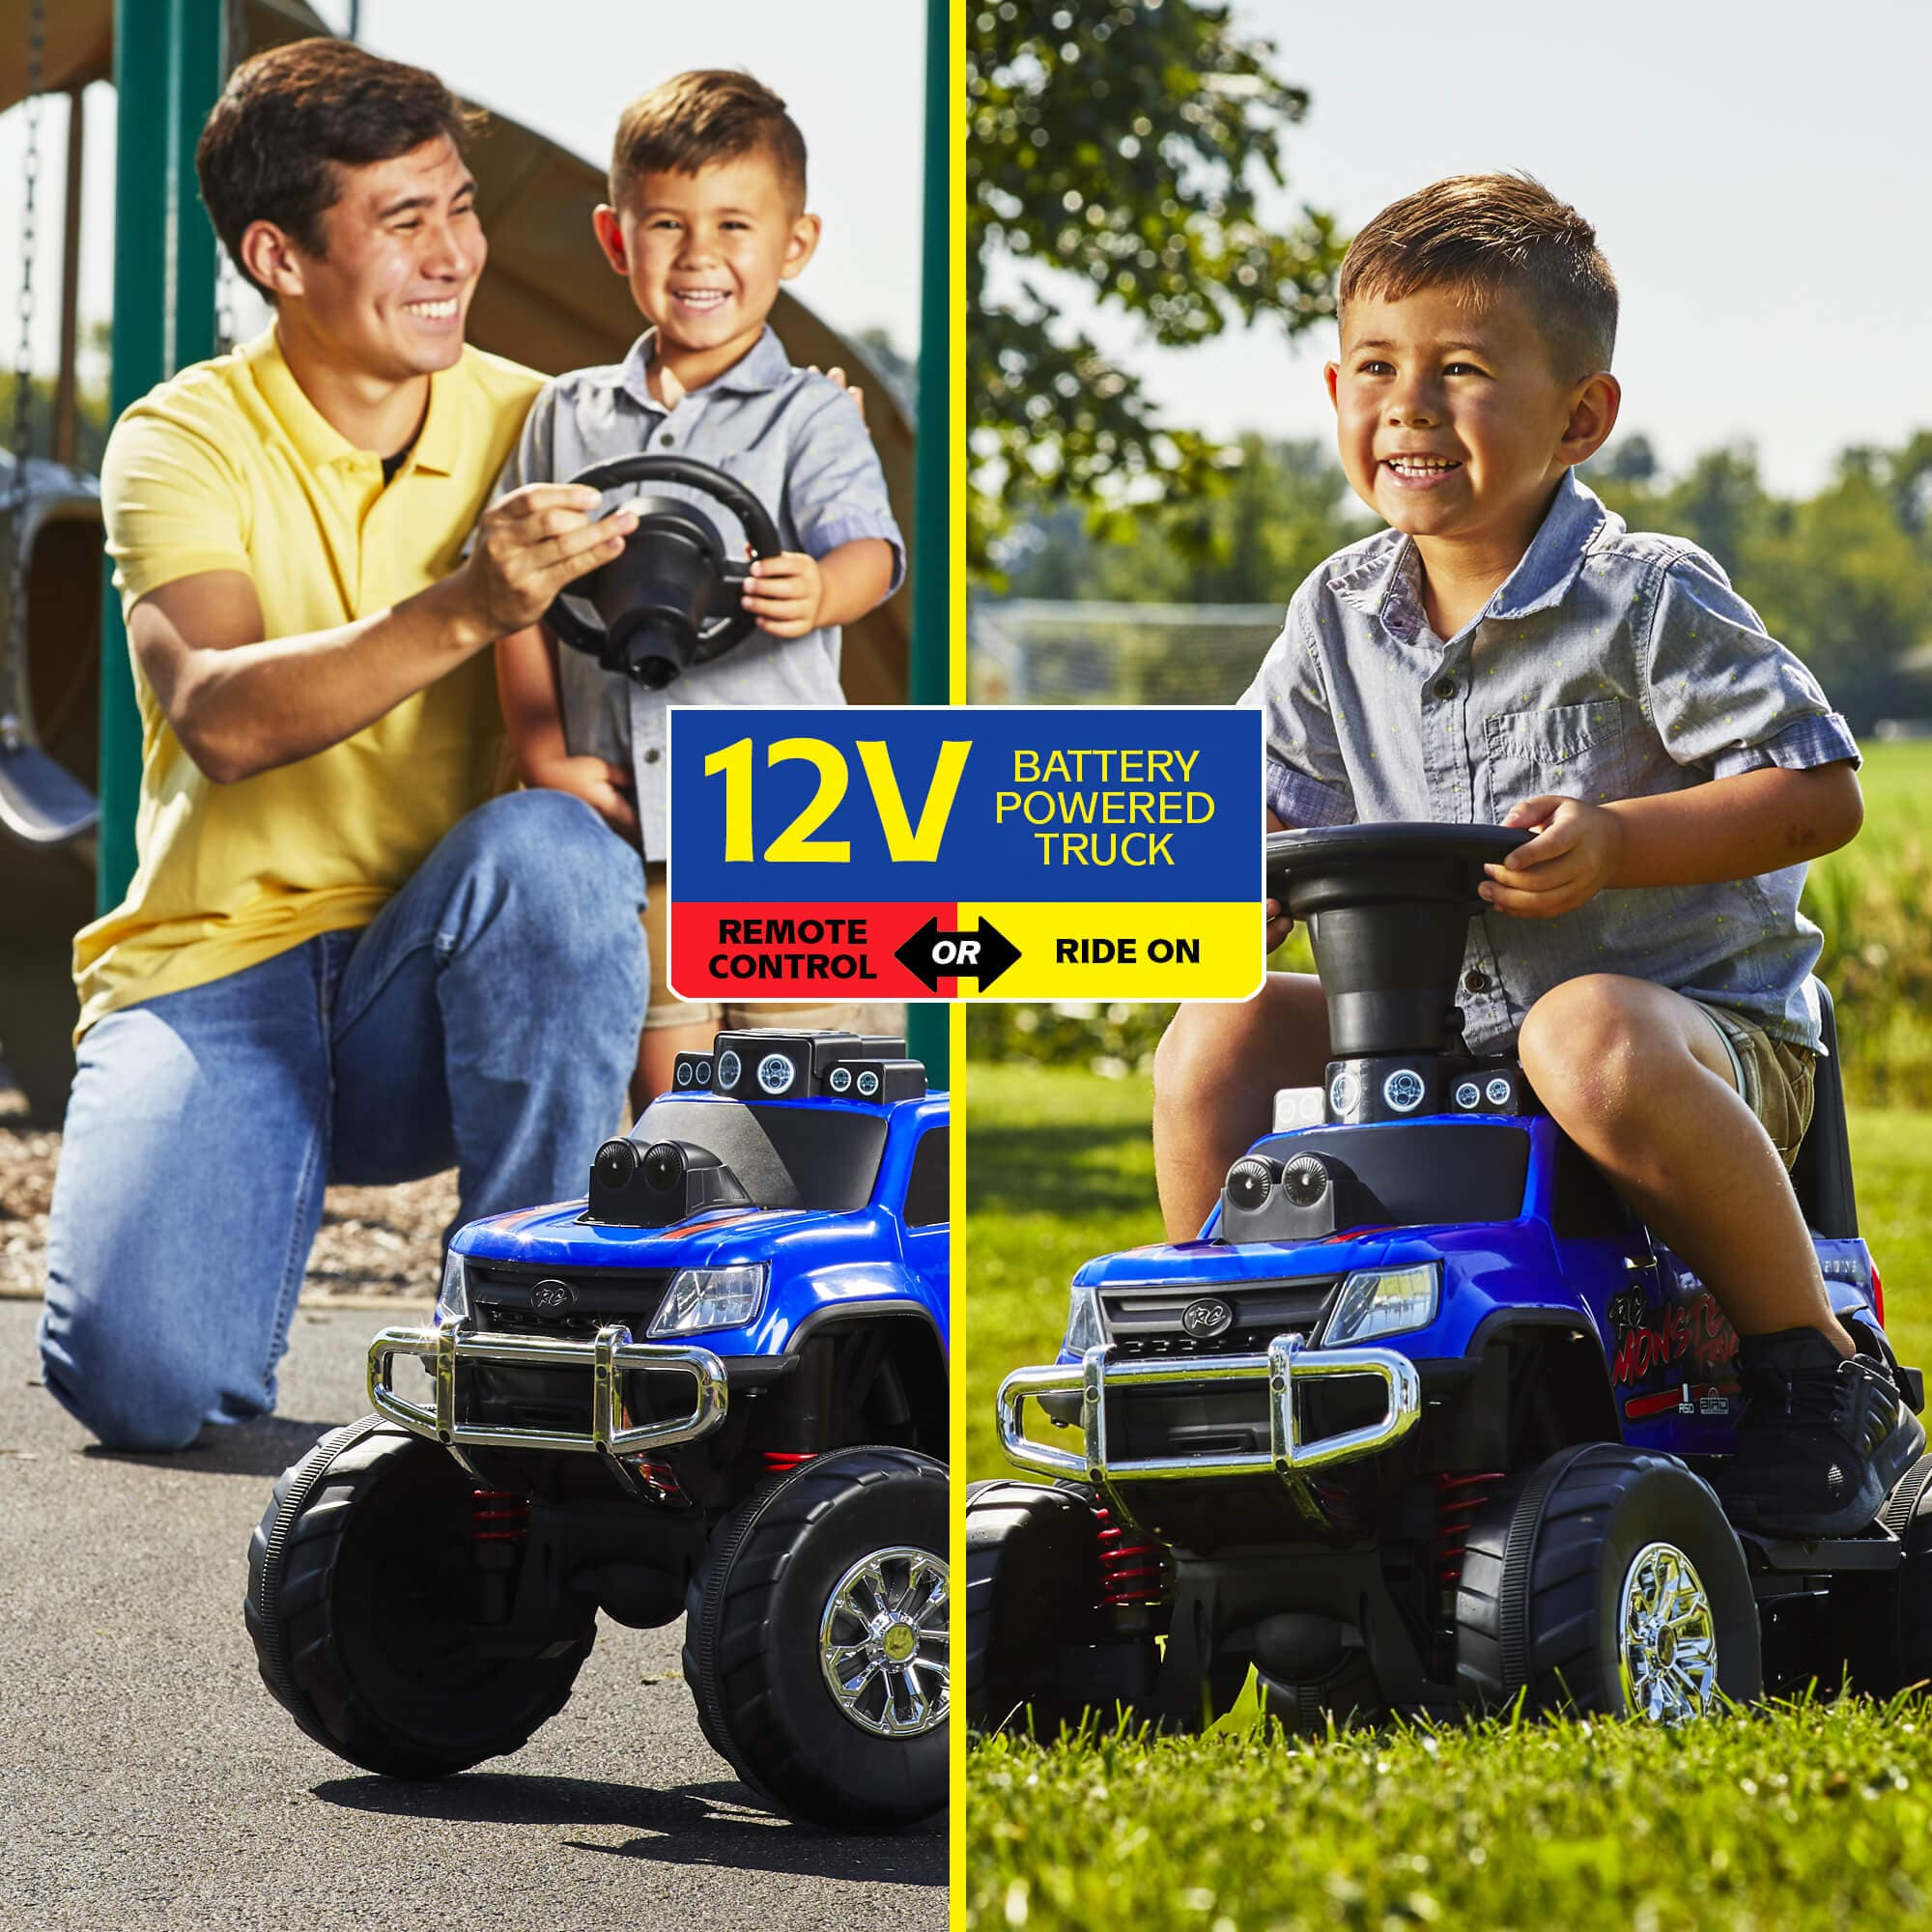 Walmart: Huffy 12V Battery-Powered Remote-Control Monster Truck Ride-On Toy for $39. Free Shipping.